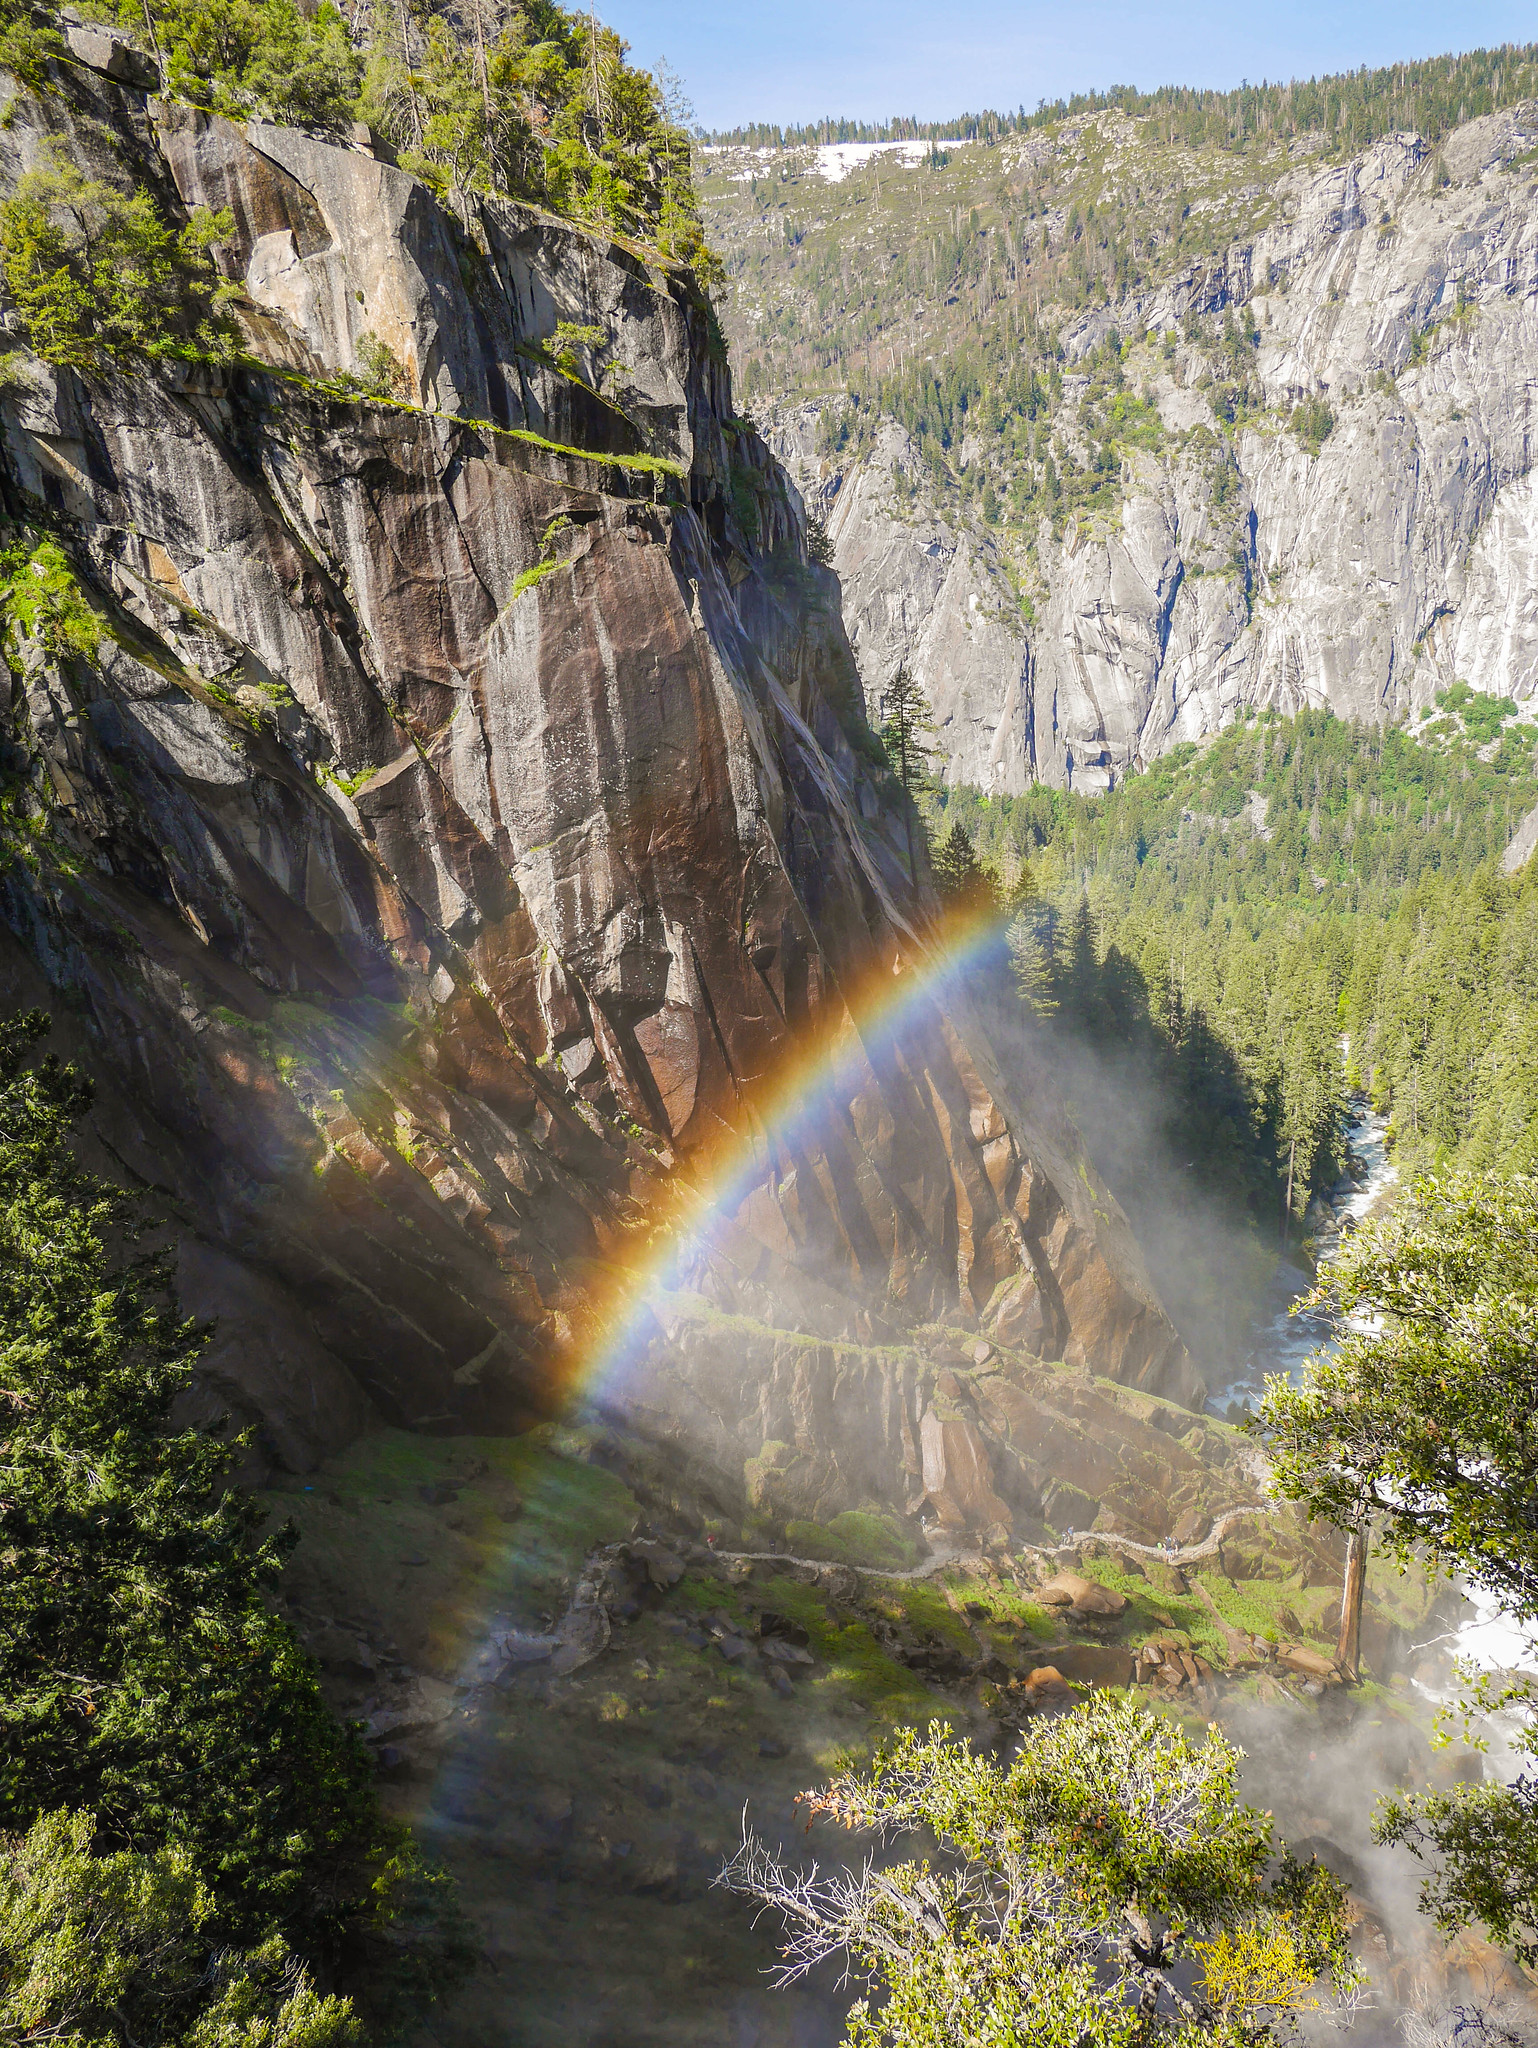 Double Rainbow below Vernal Falls on the Mist Trail